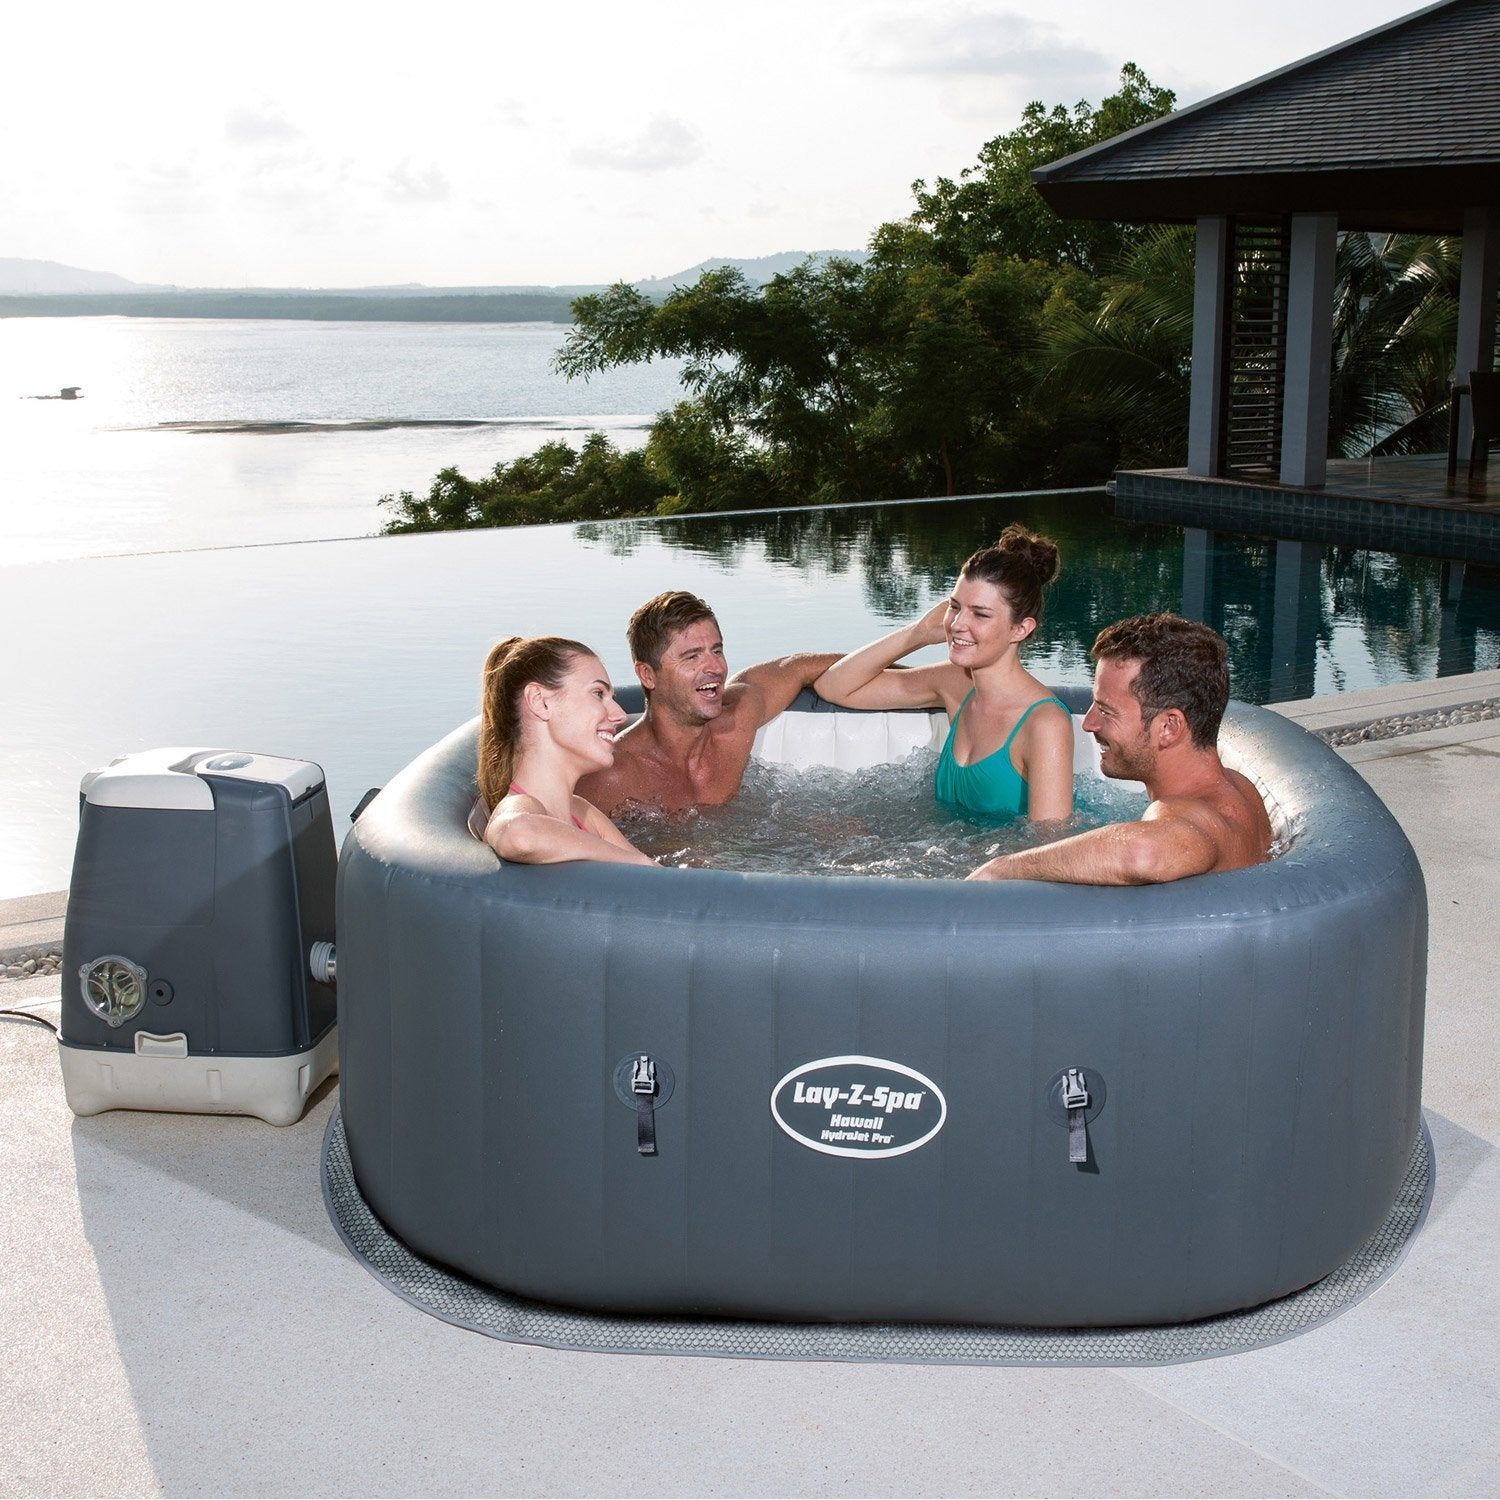 Jacuzzi Gonflable Leroy Merlin spa gonflable bestway hawai carré | spa gonflable